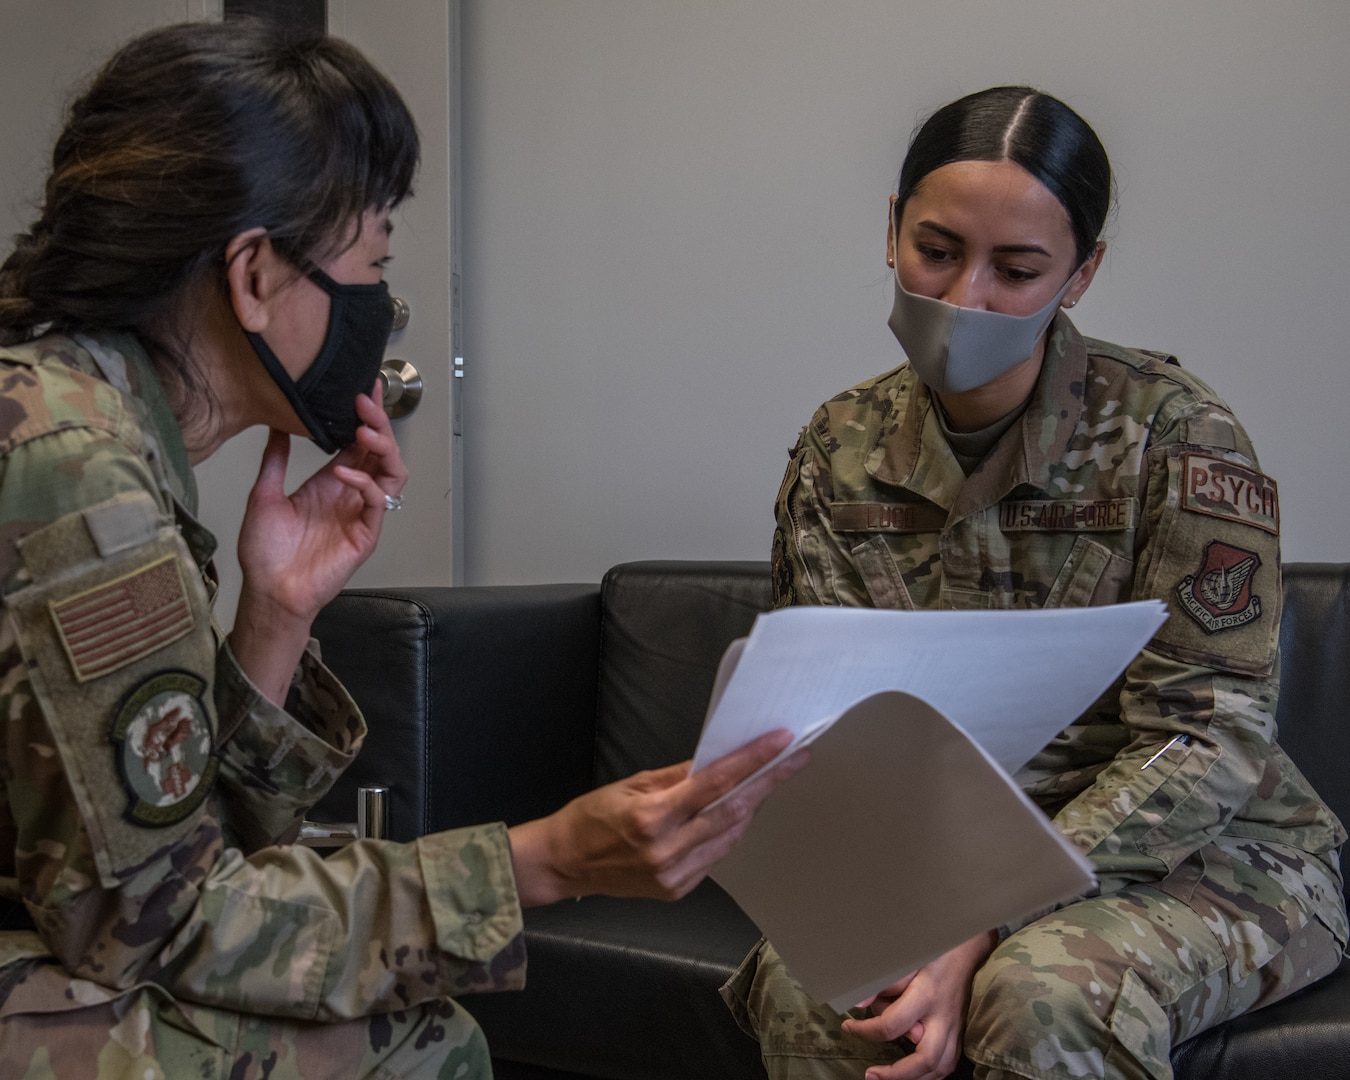 Guardian Wingman, a suicide prevention training program designed by a team at the Kadena Mental Health Clinic, aims to improve mental health management by building a community of Airmen equipped with the tools to support their fellow wingmen.